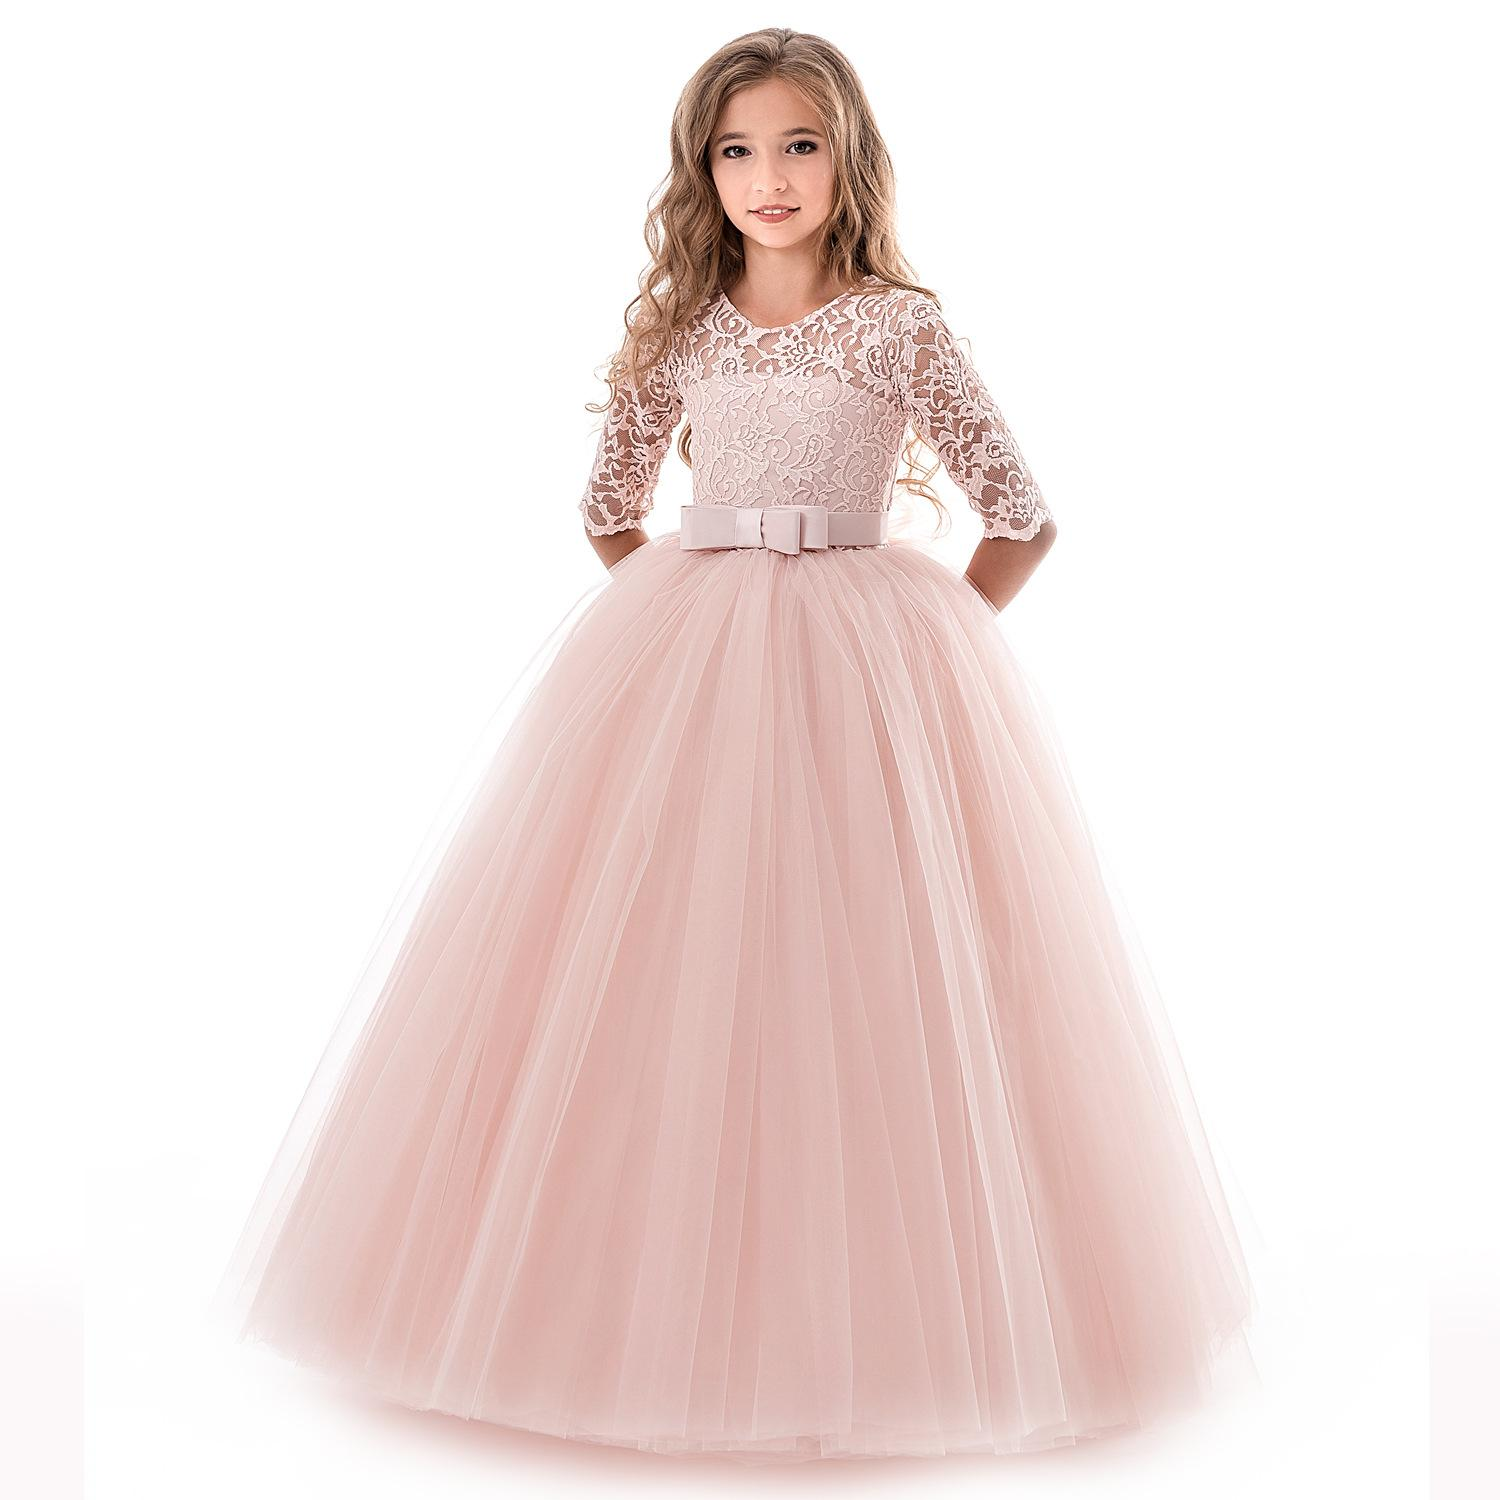 a7b889f9aba Cheap Pink Flower Girls Dresses For Wedding Lace Applique Ruffles Kids  Formal Wear Long Beach Ball Little Girl Pageant Gowns 2019 Purple Dresses  For Girls ...